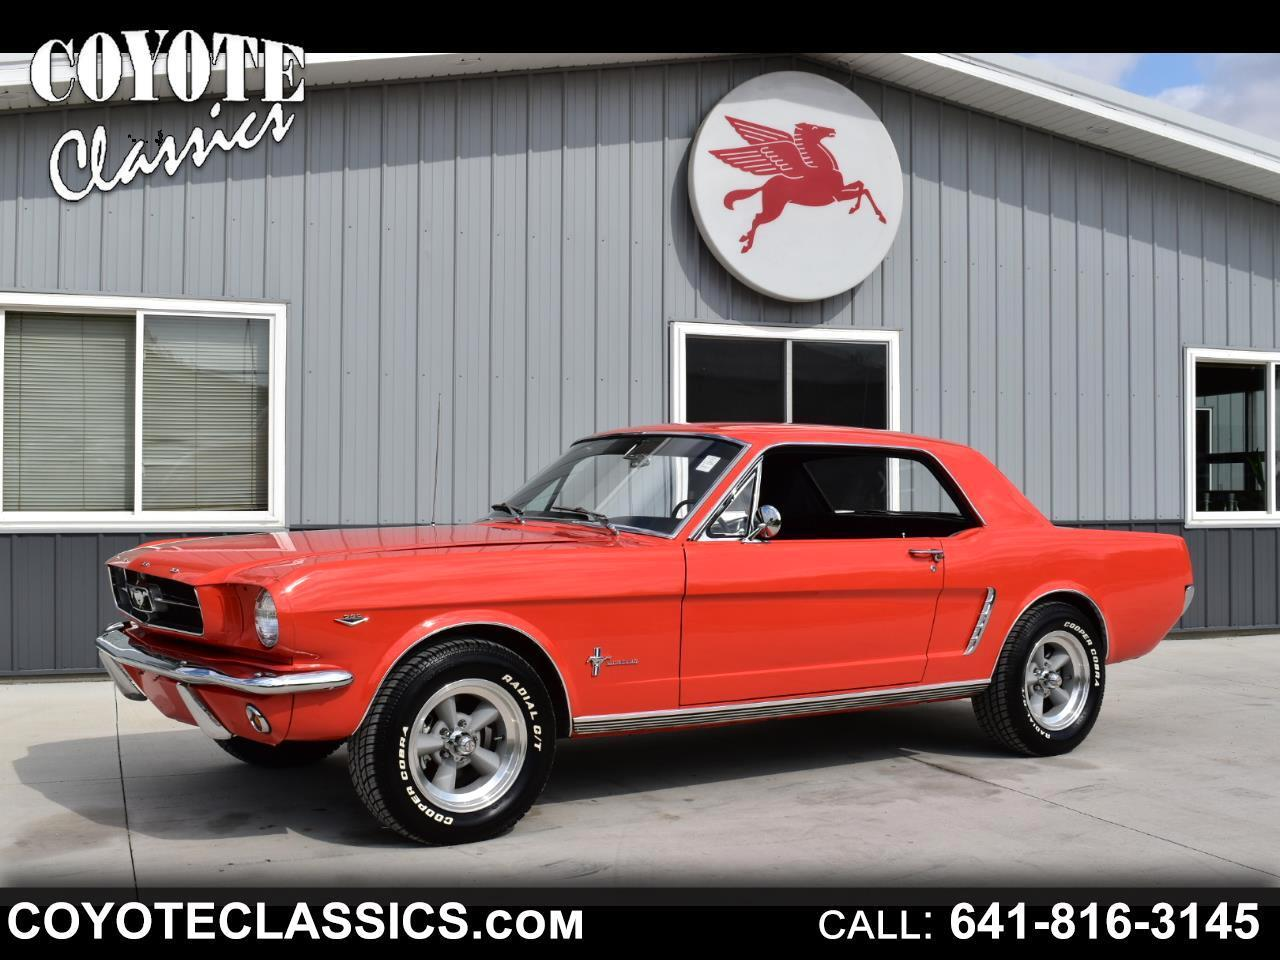 Ford Mustang Gt a v8 1965 prix tout compris 1965